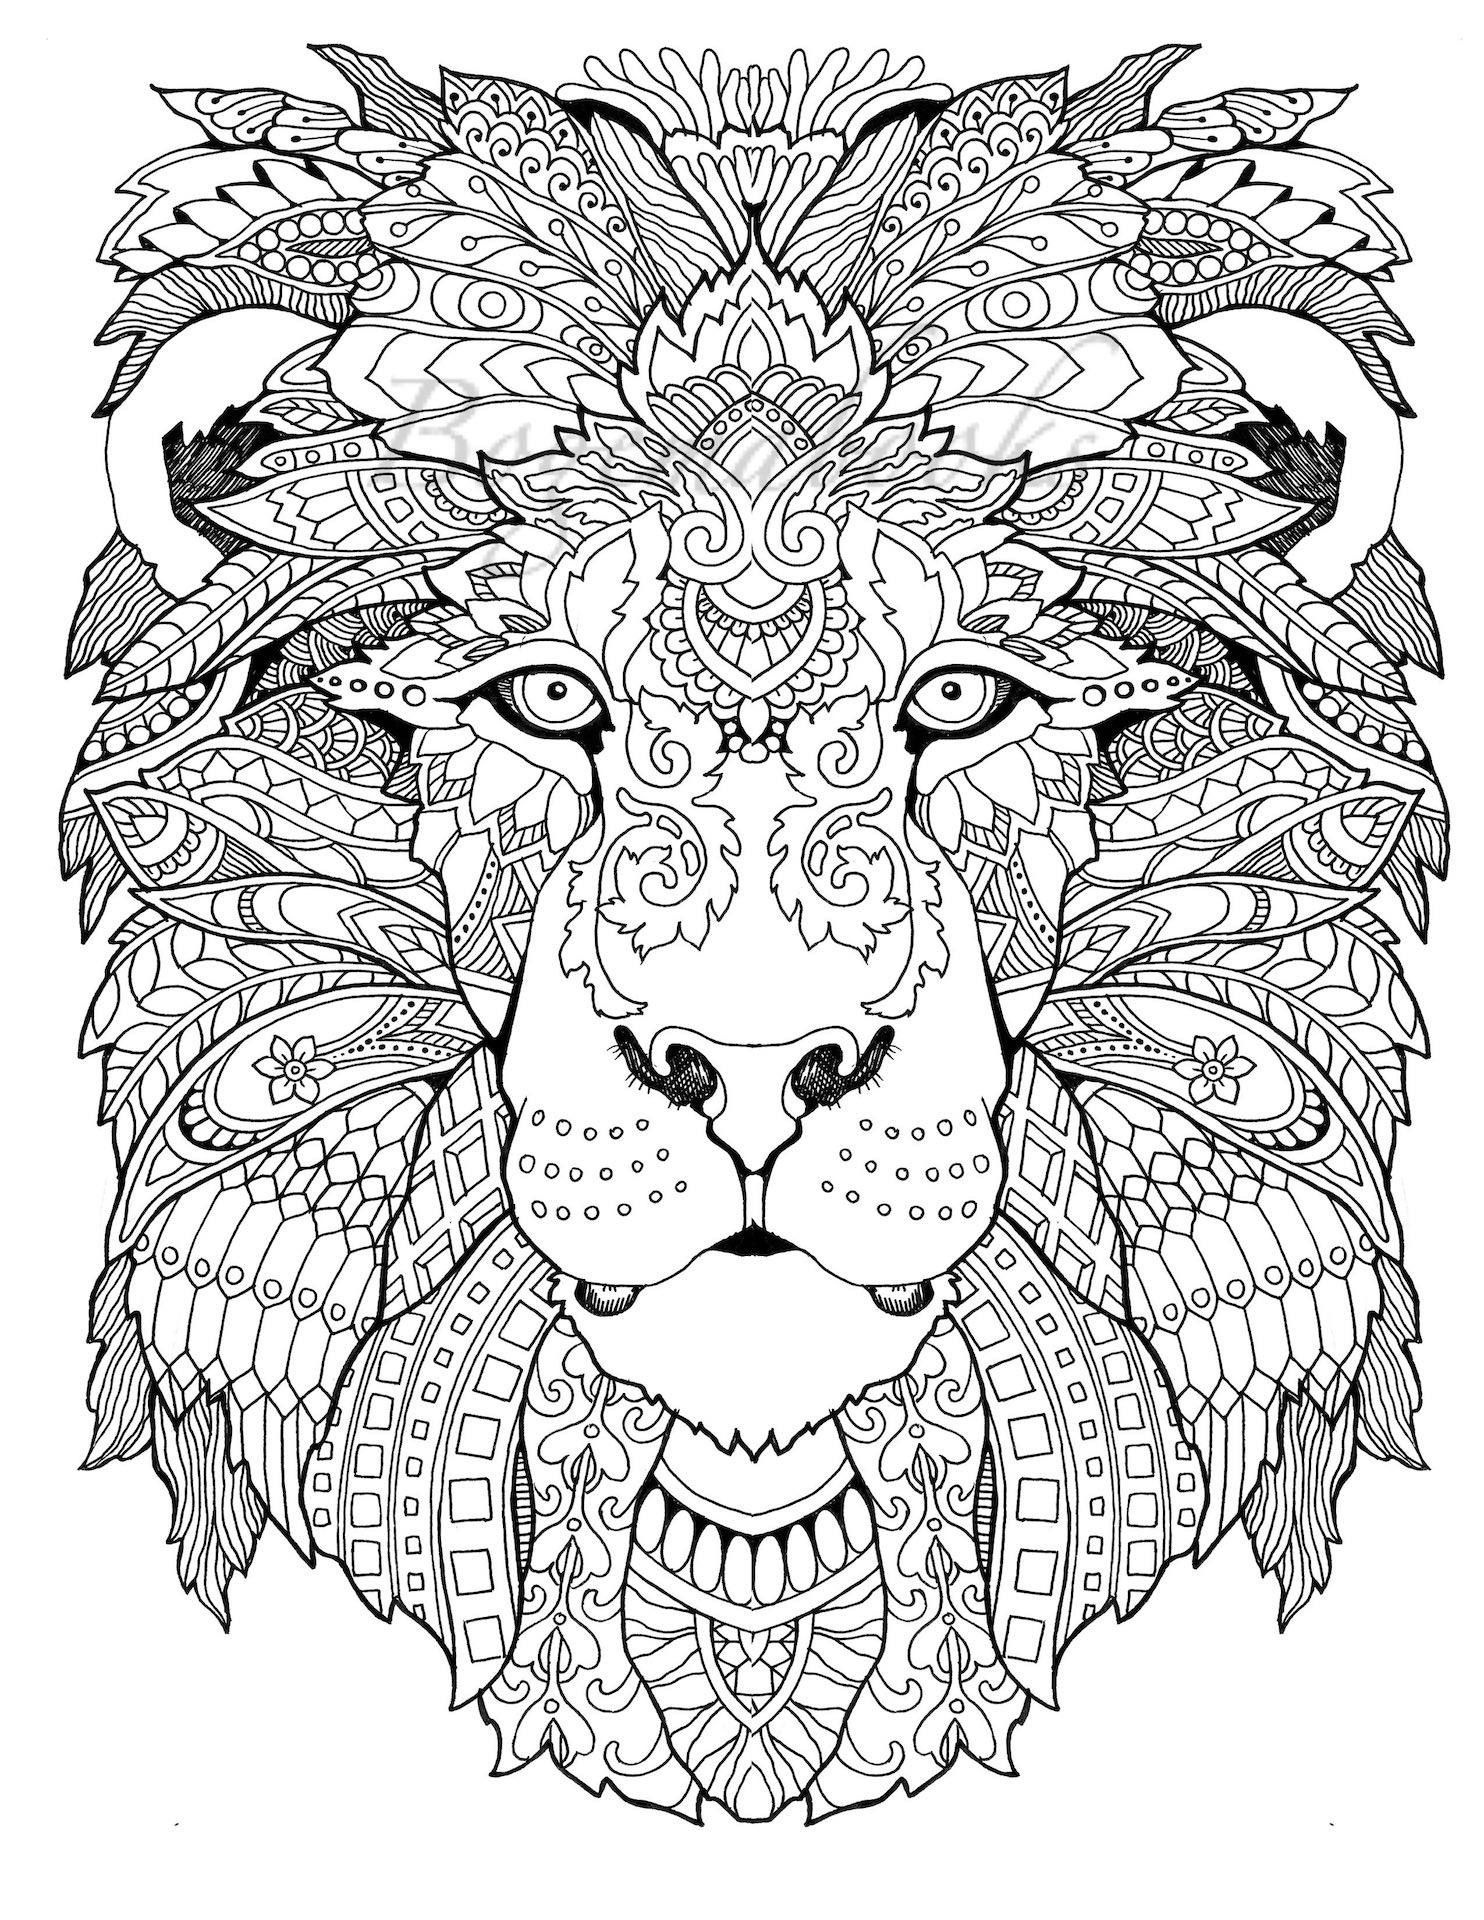 Awesome Animals (Adult Coloring Pages, Coloring Pages Printable - Free Printable Coloring Pages For Adults Pdf